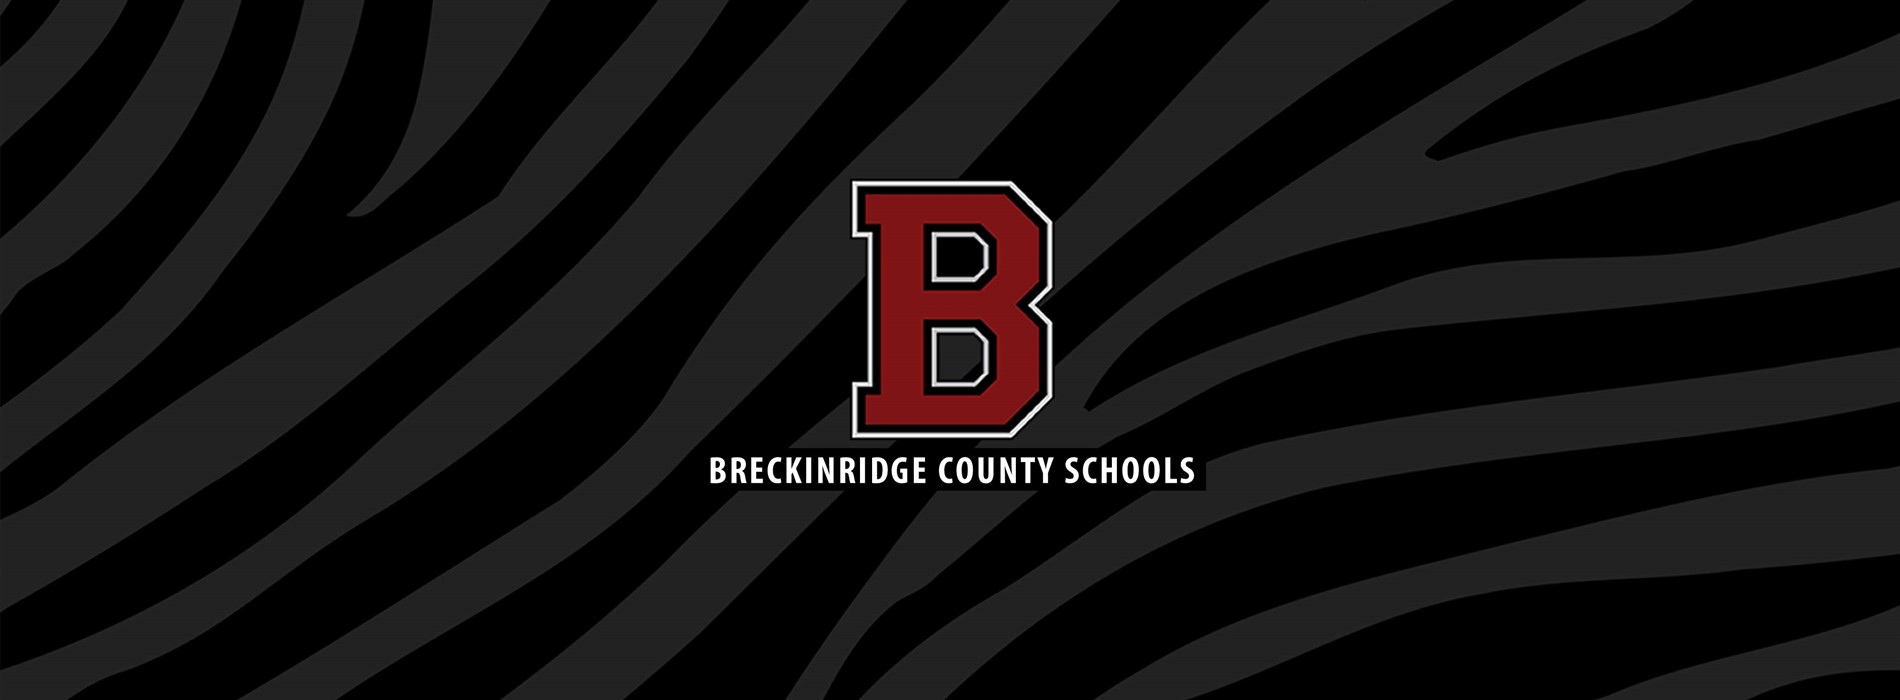 Breckinridge County Schools